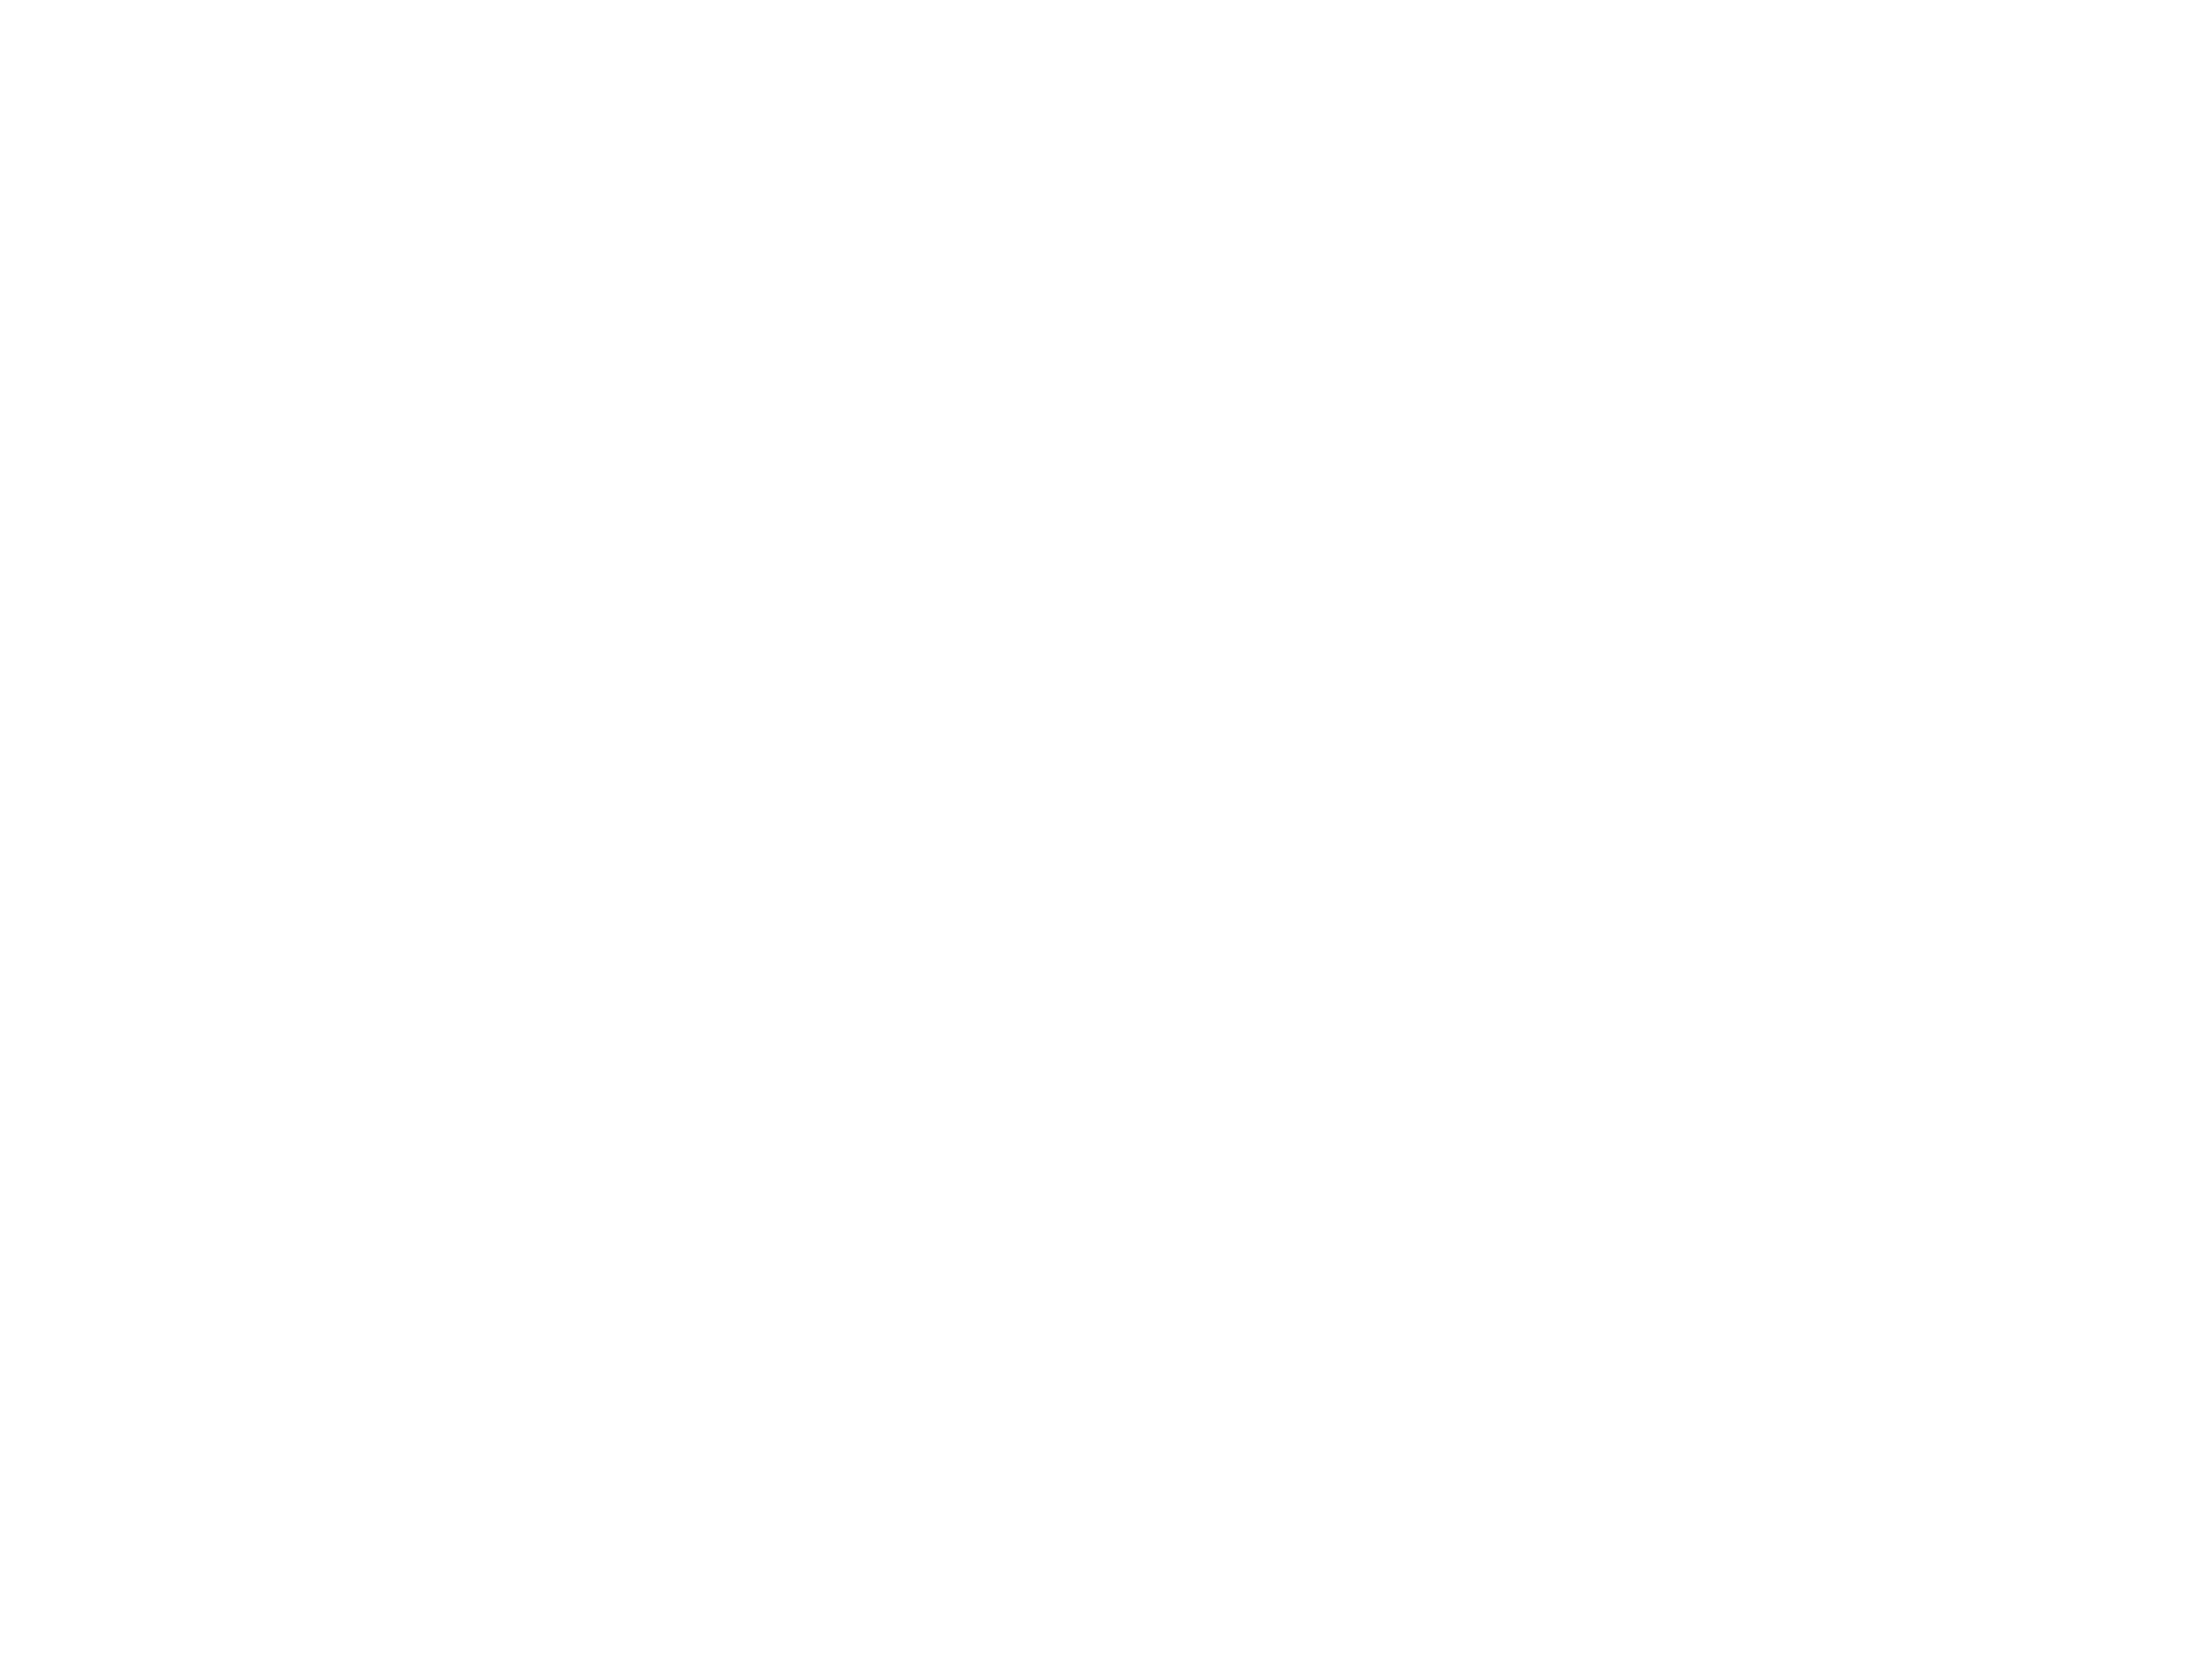 Cannondale Electric Bikes | More rides. More speed. More distance. More fun.